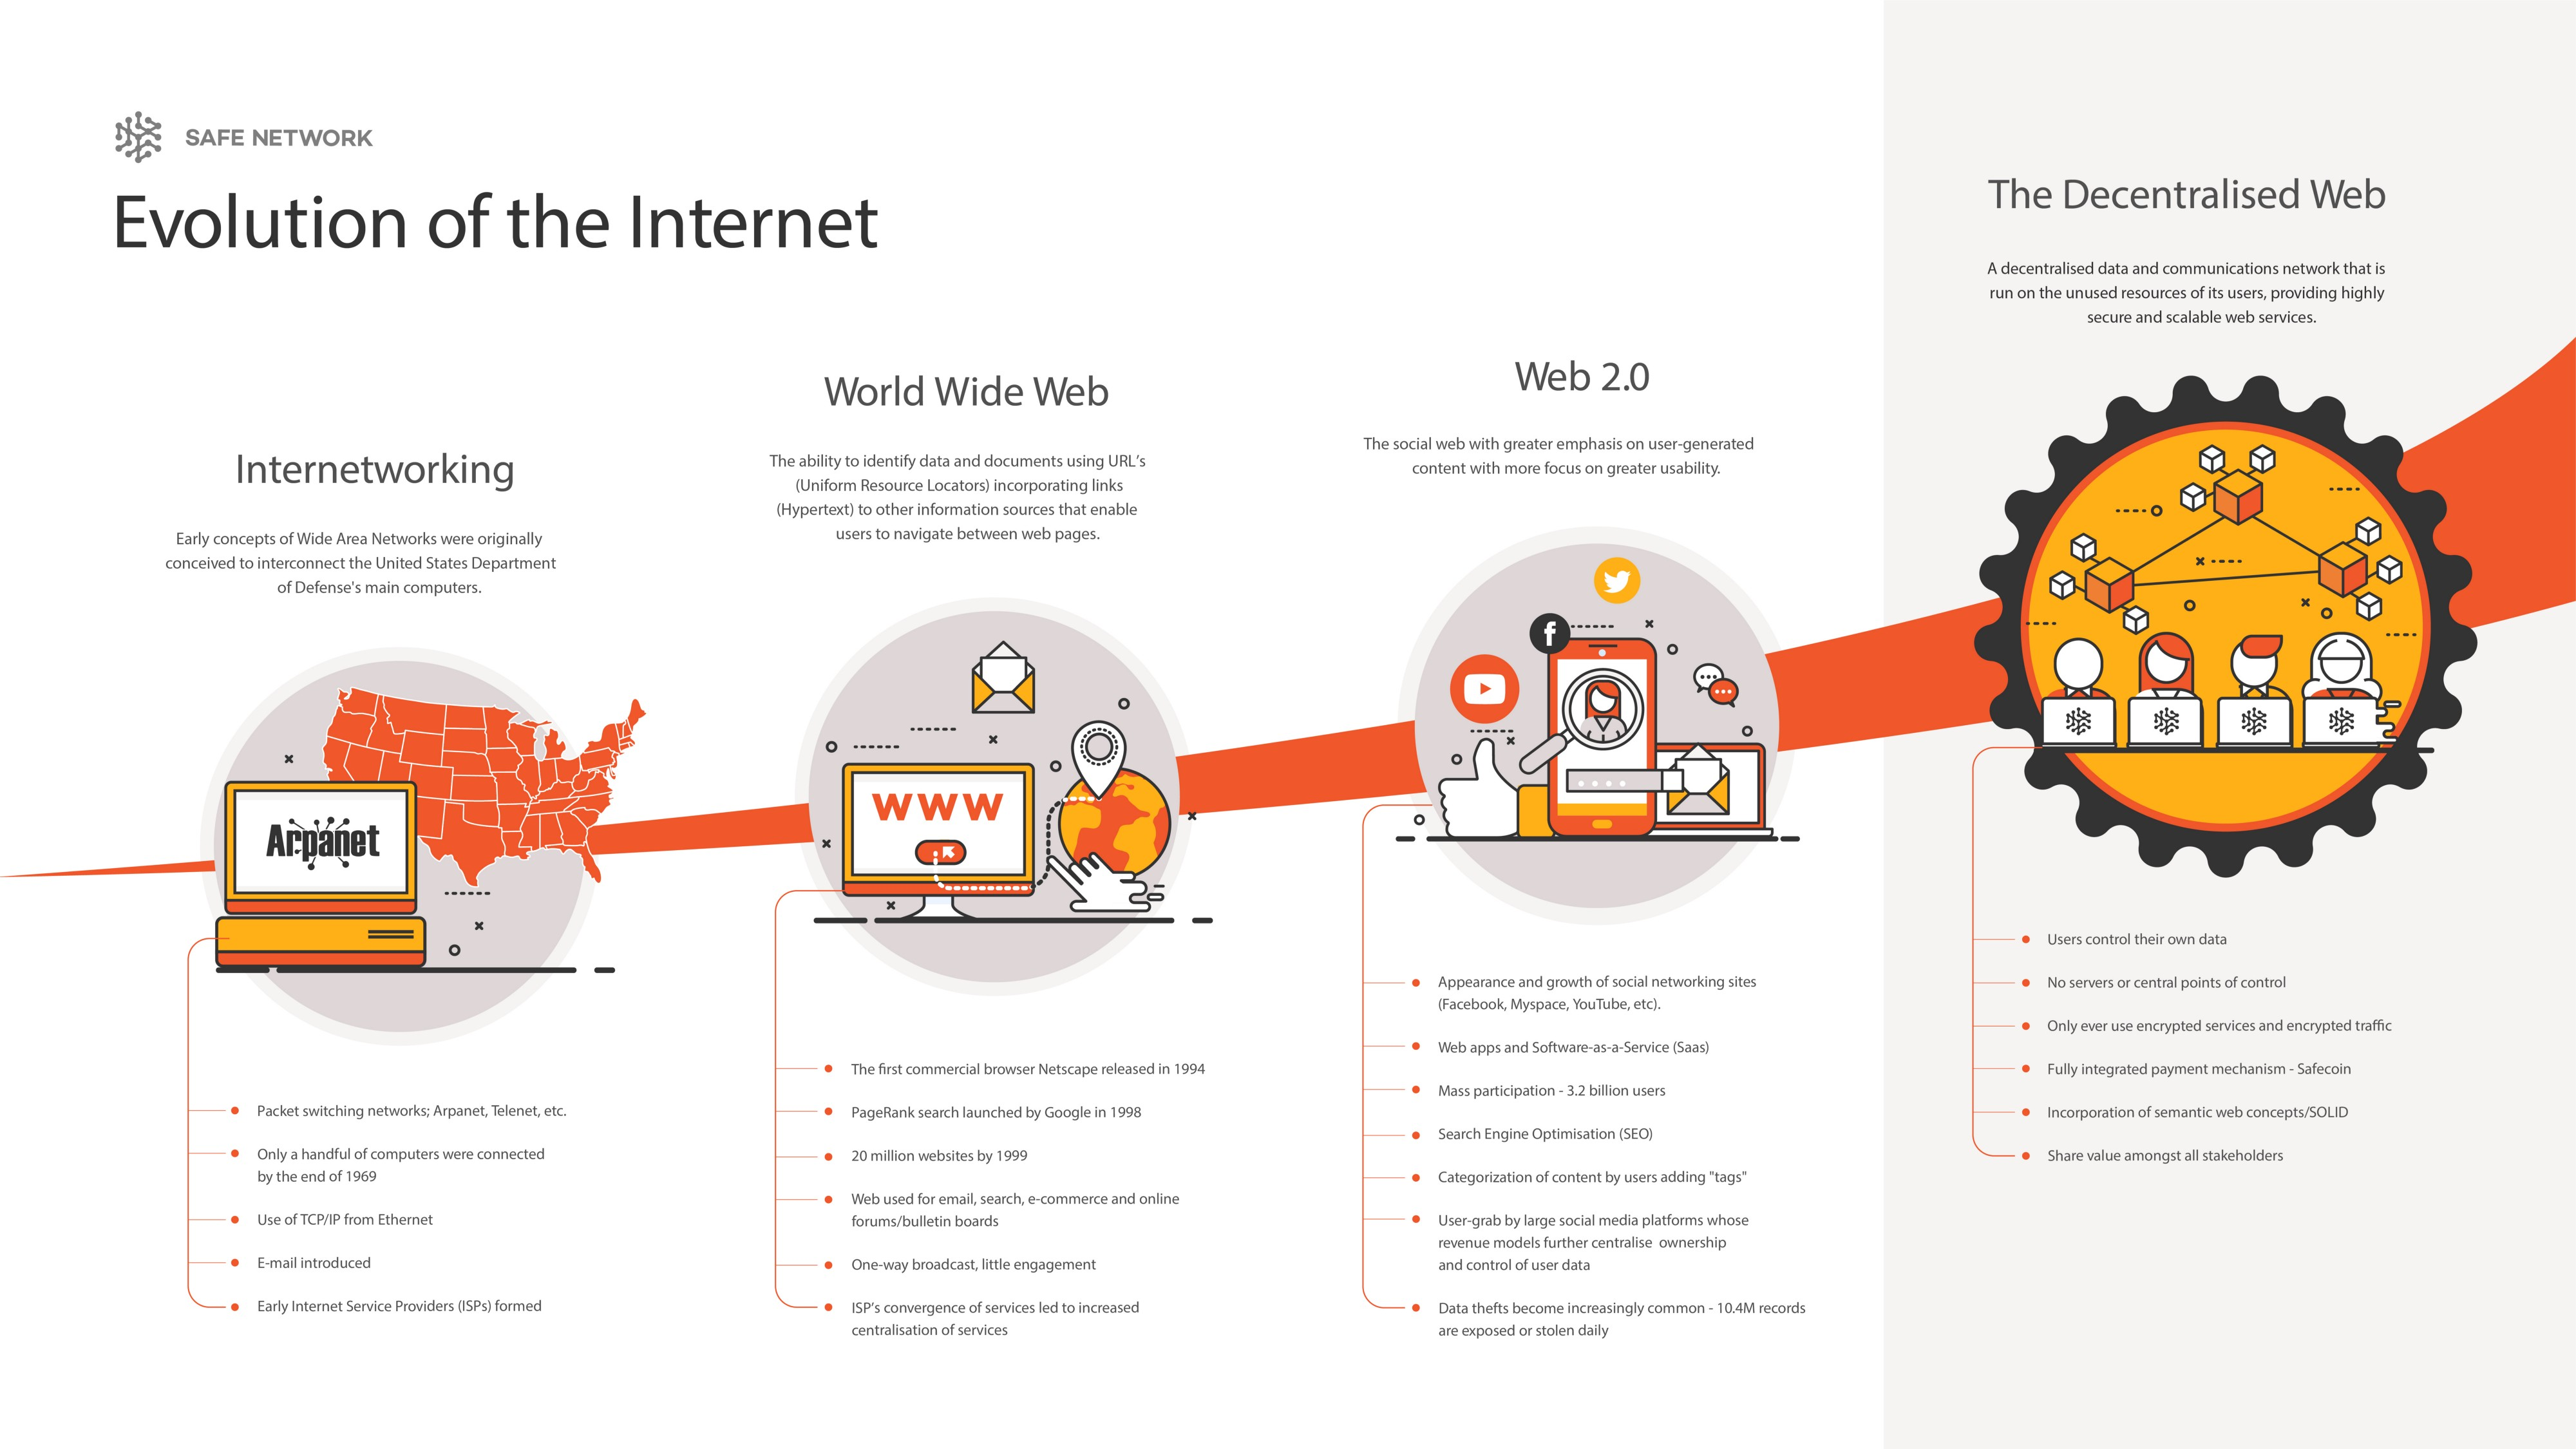 Why the Internet Needs to Evolve (Again) - safenetwork - Medium